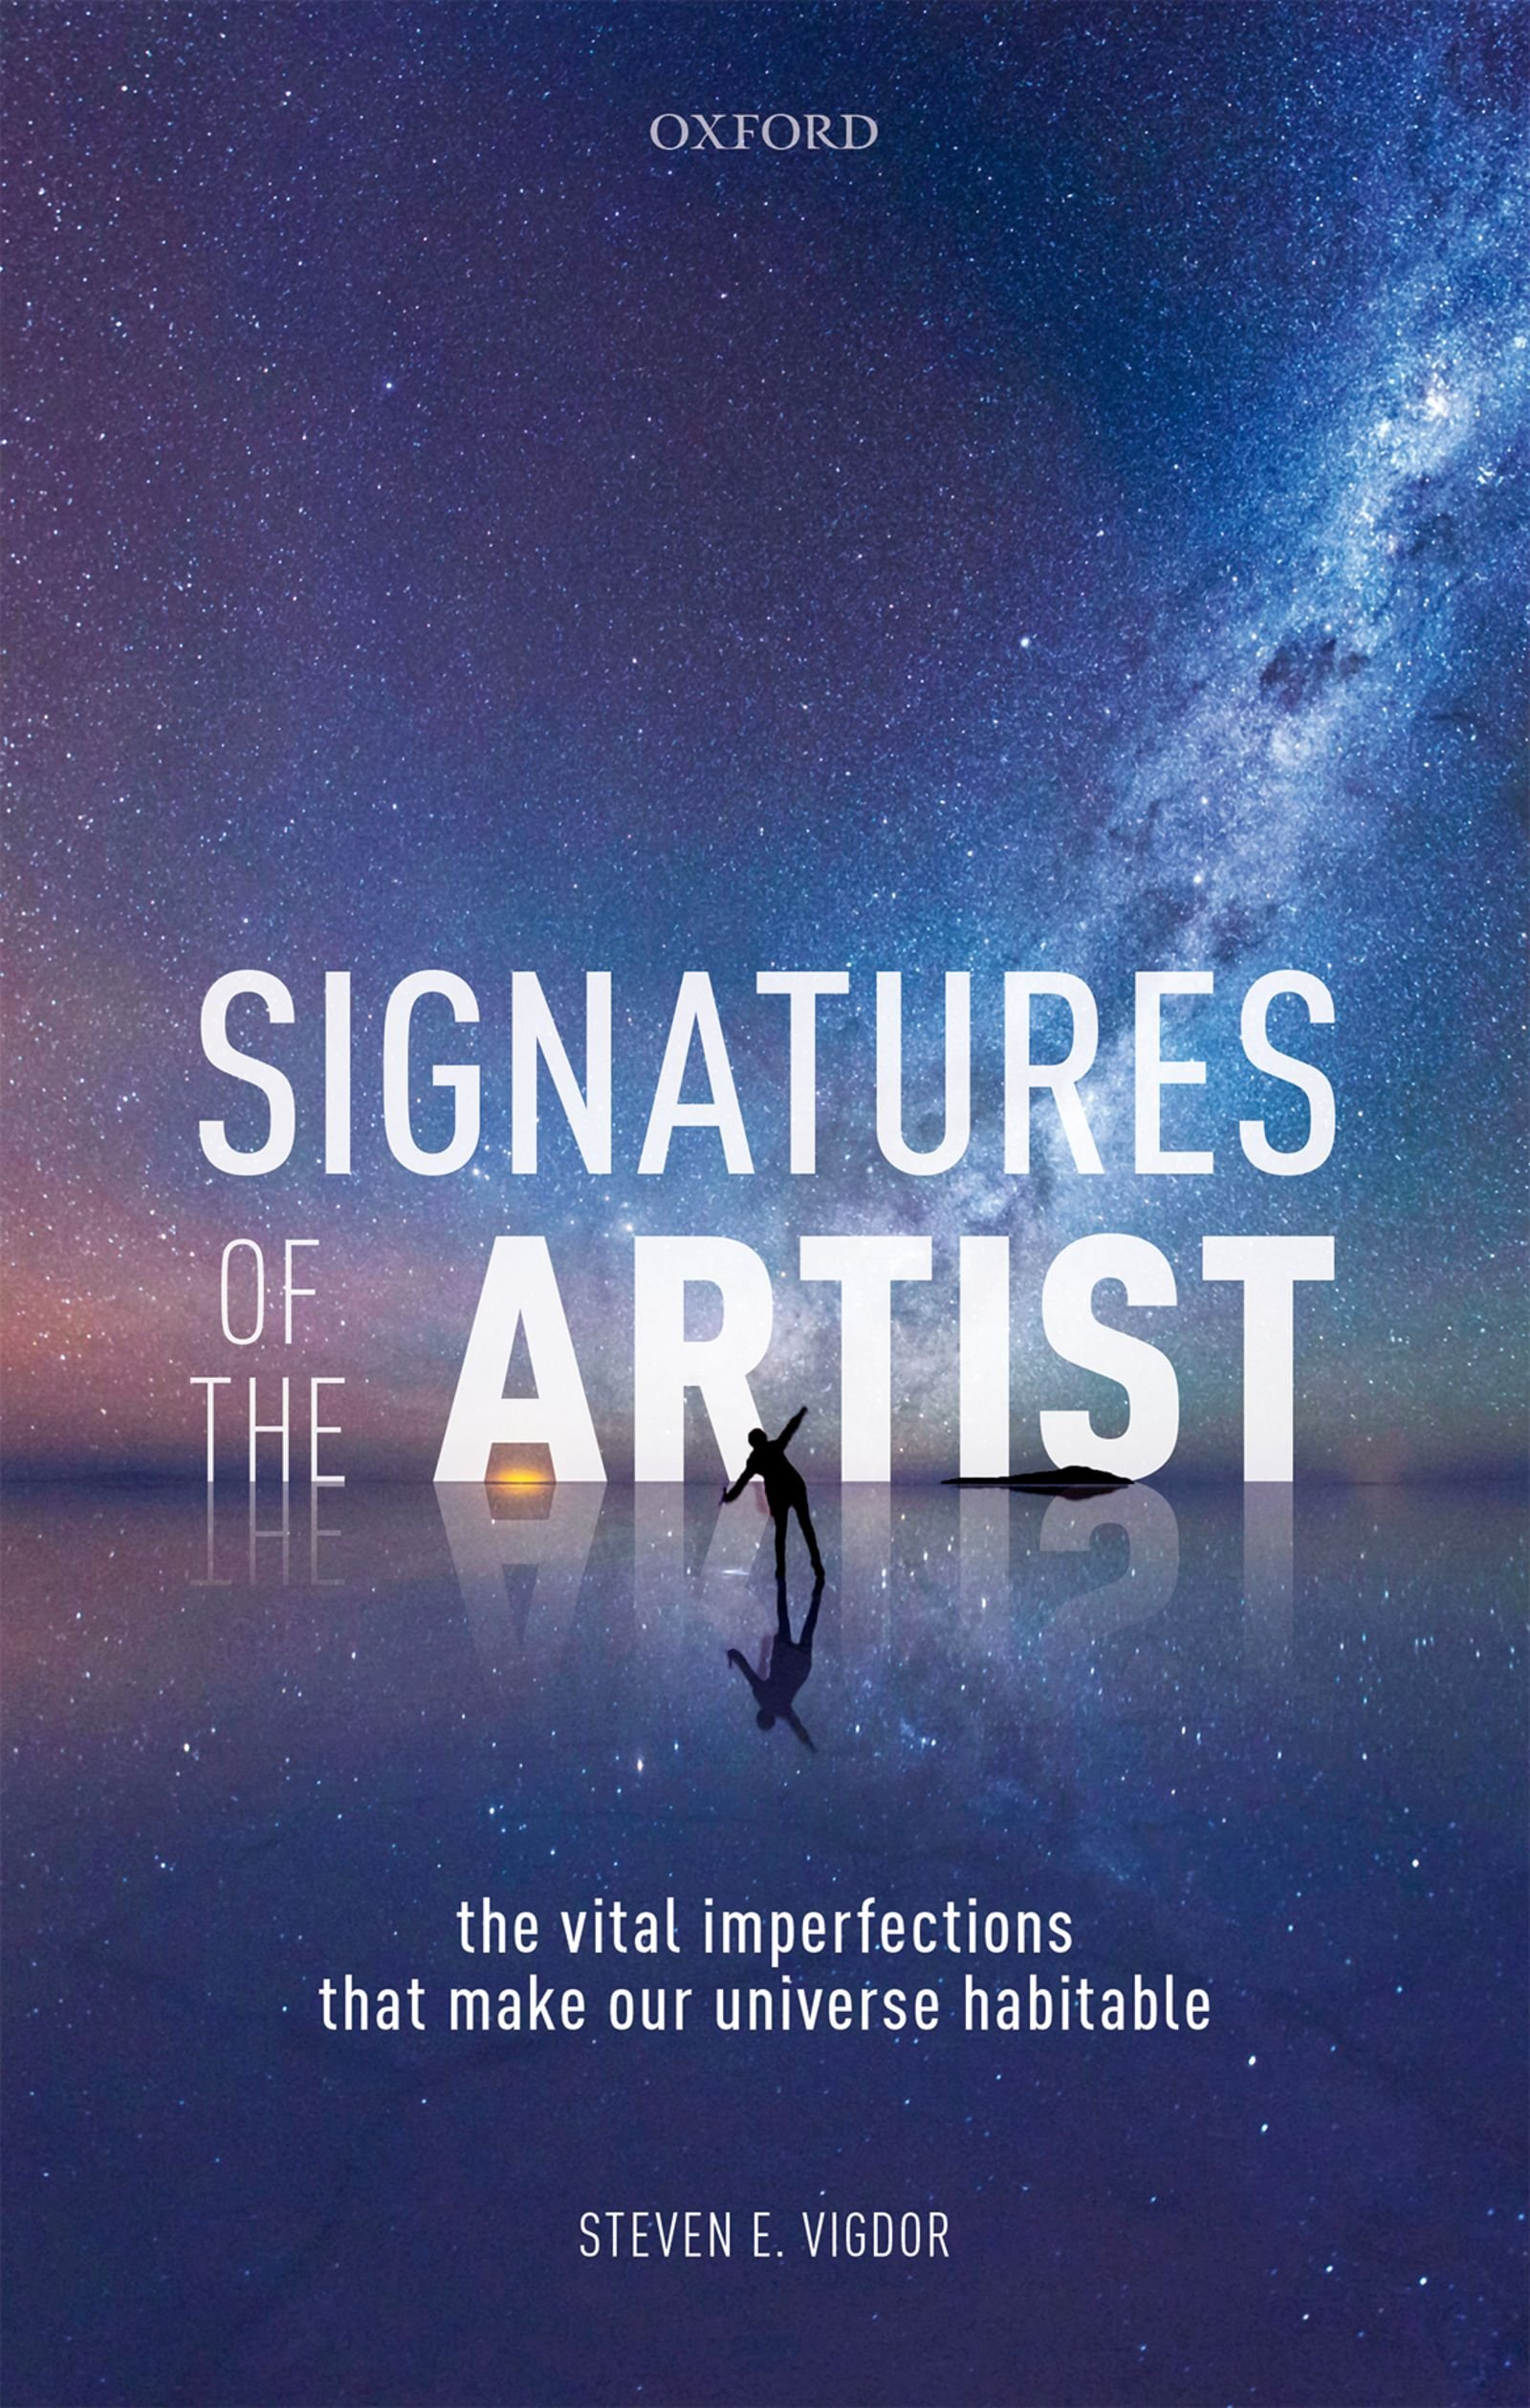 Download Signatures Of The Artist: The Vital Imperfections That Make Our Universe Habitable 